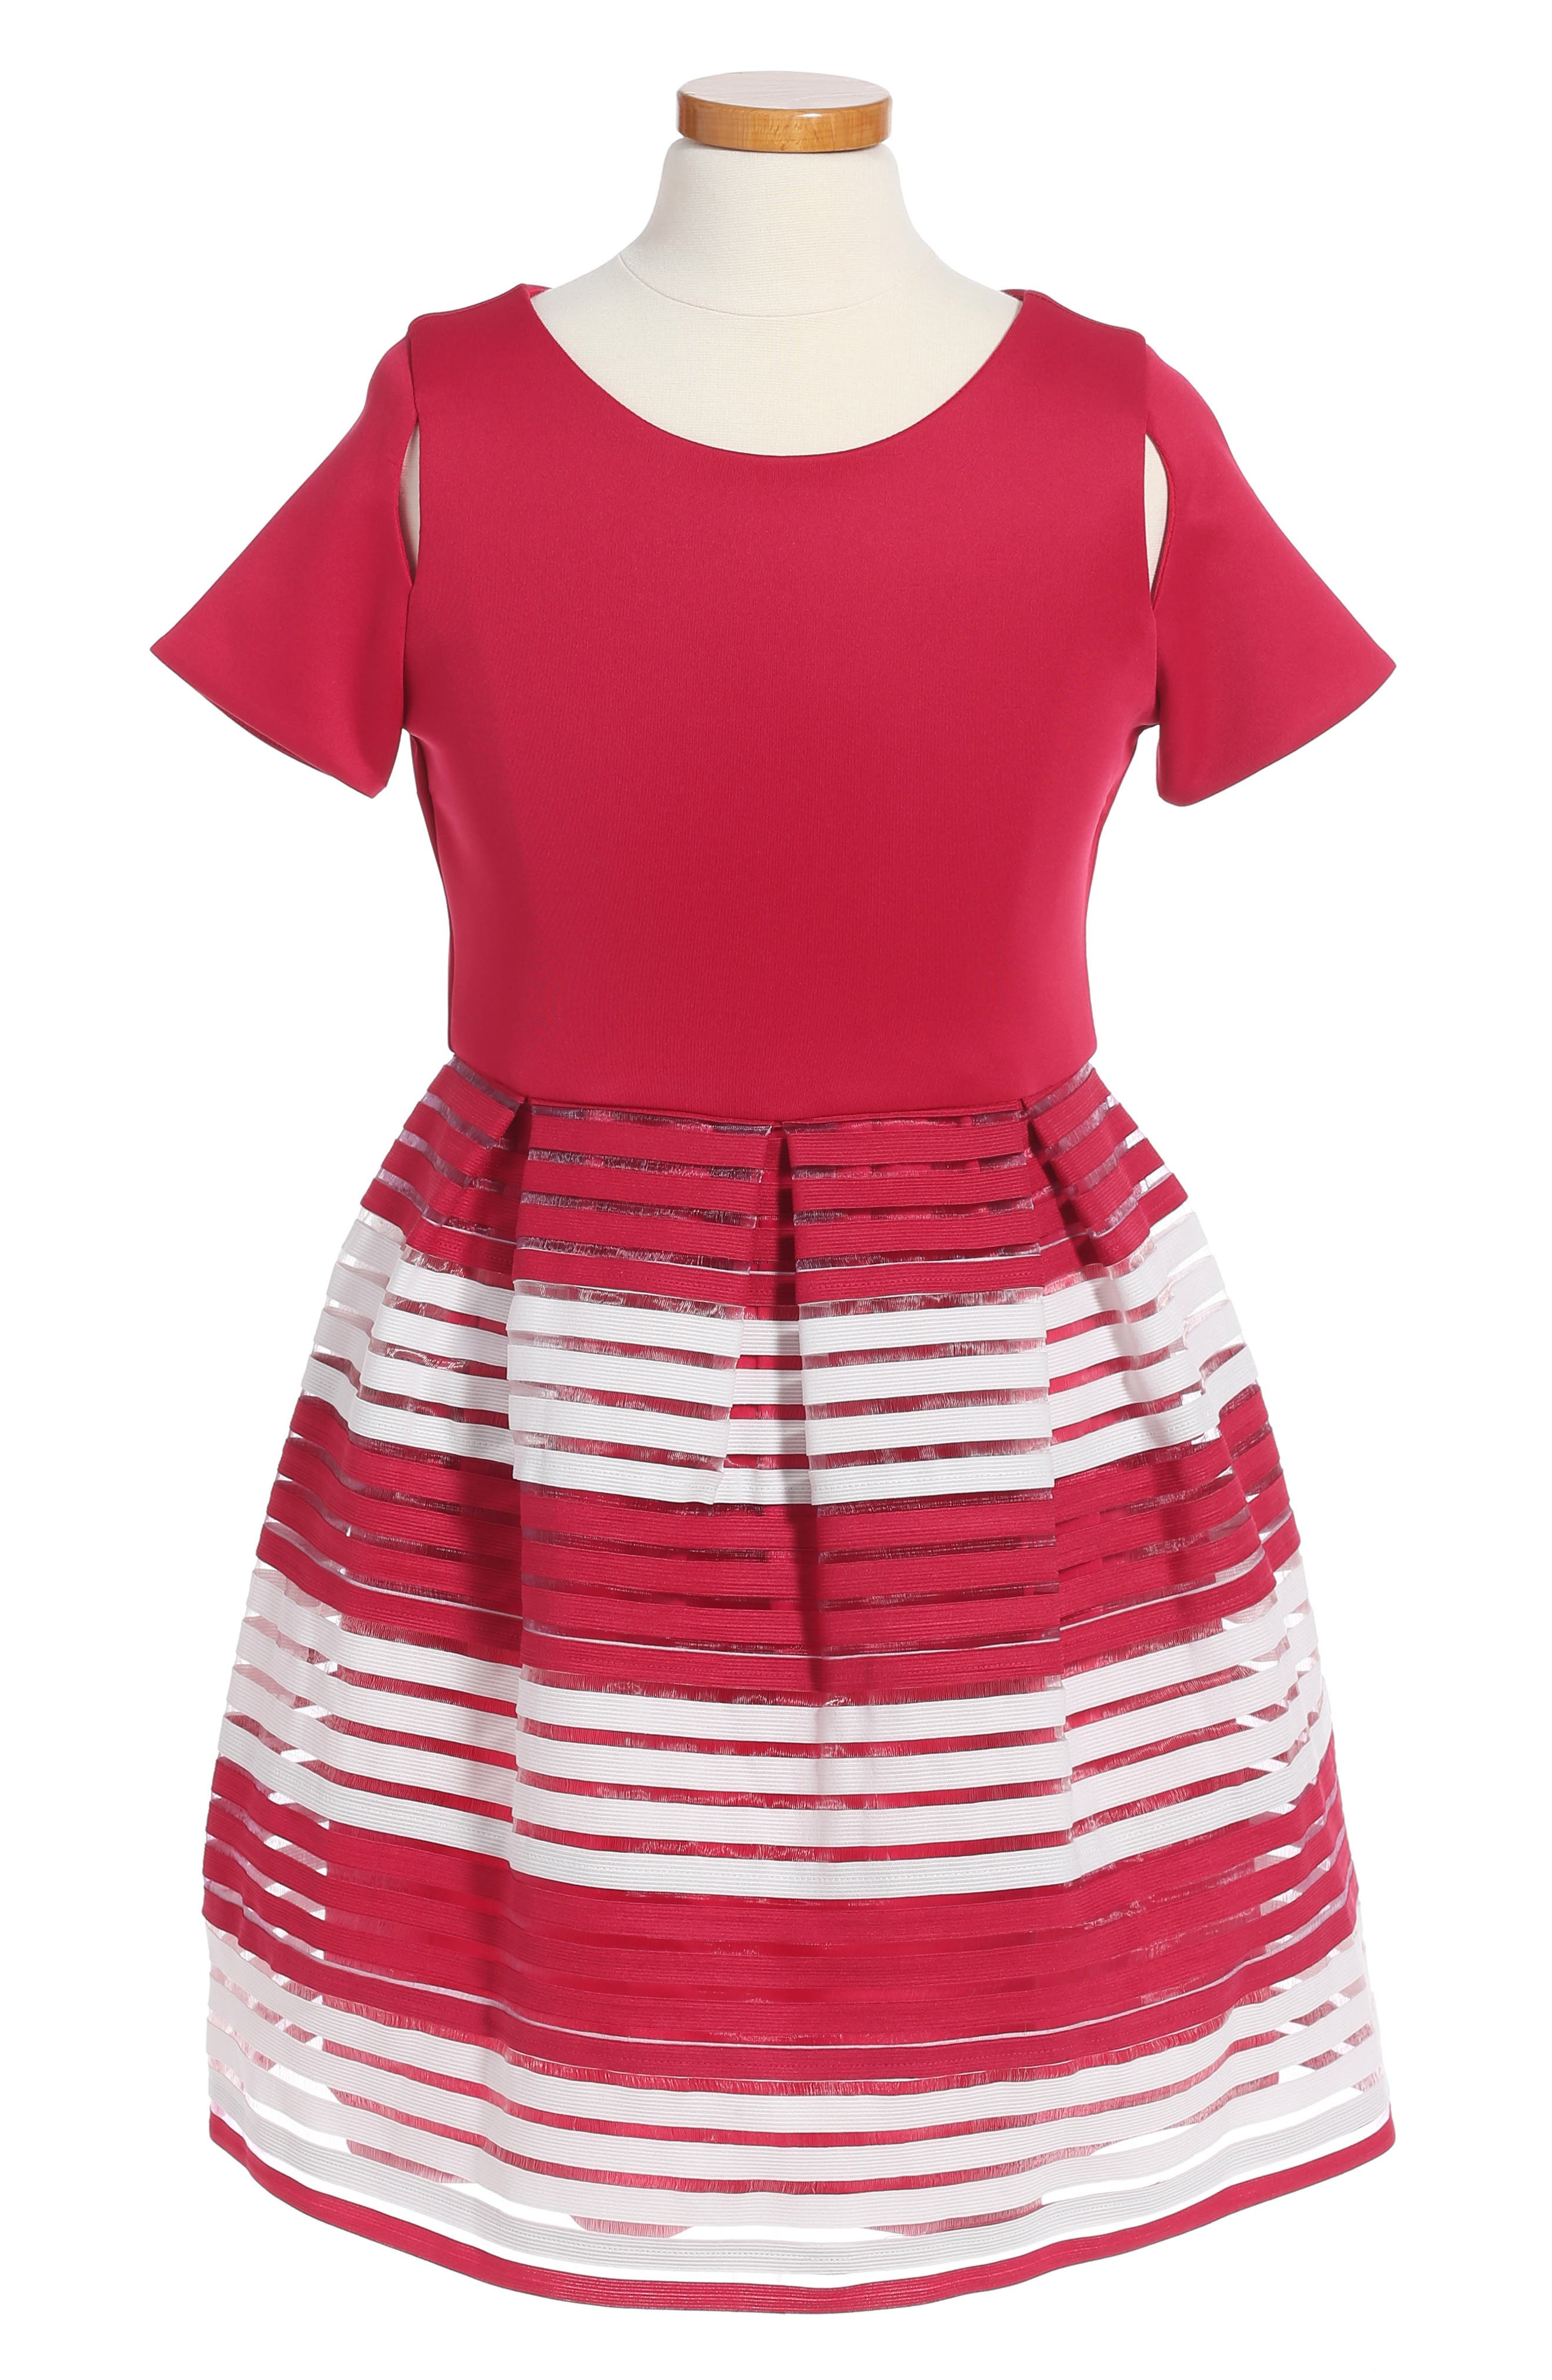 BLUSH by US Angels Elastic Stripe Dress (Big Girls)